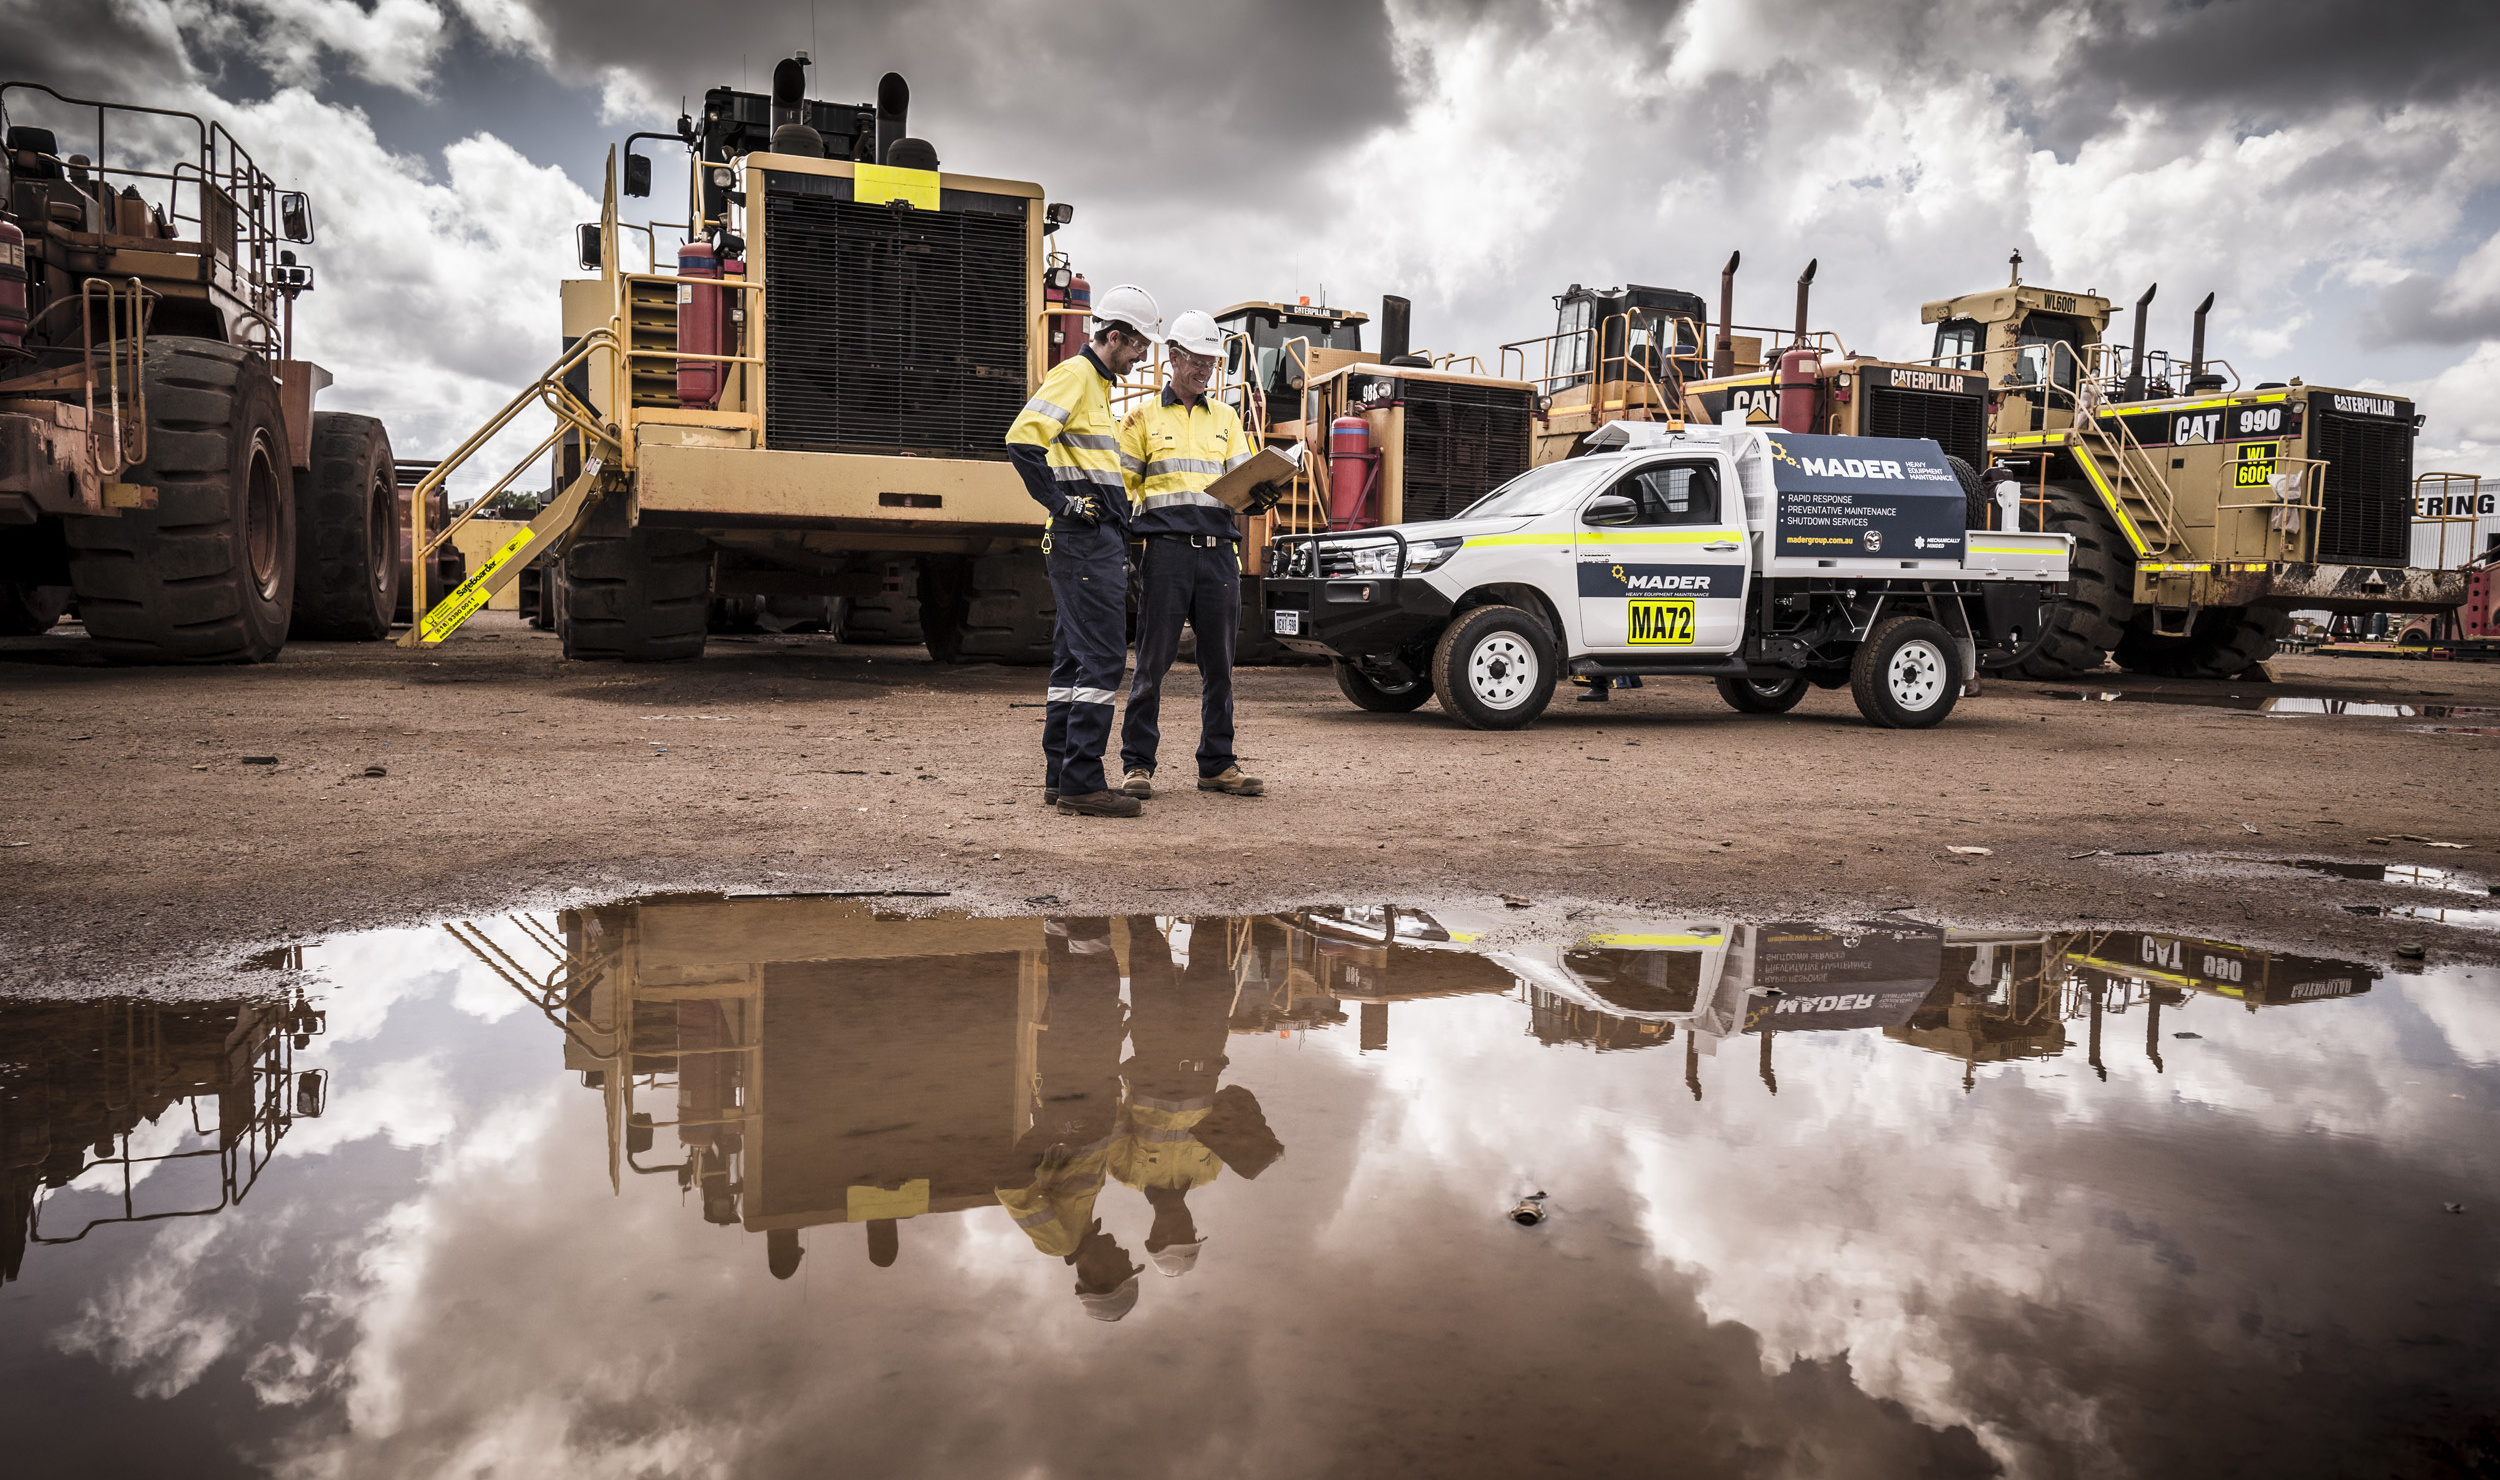 Mader Group - Heavy equipment maintenance, rapid response